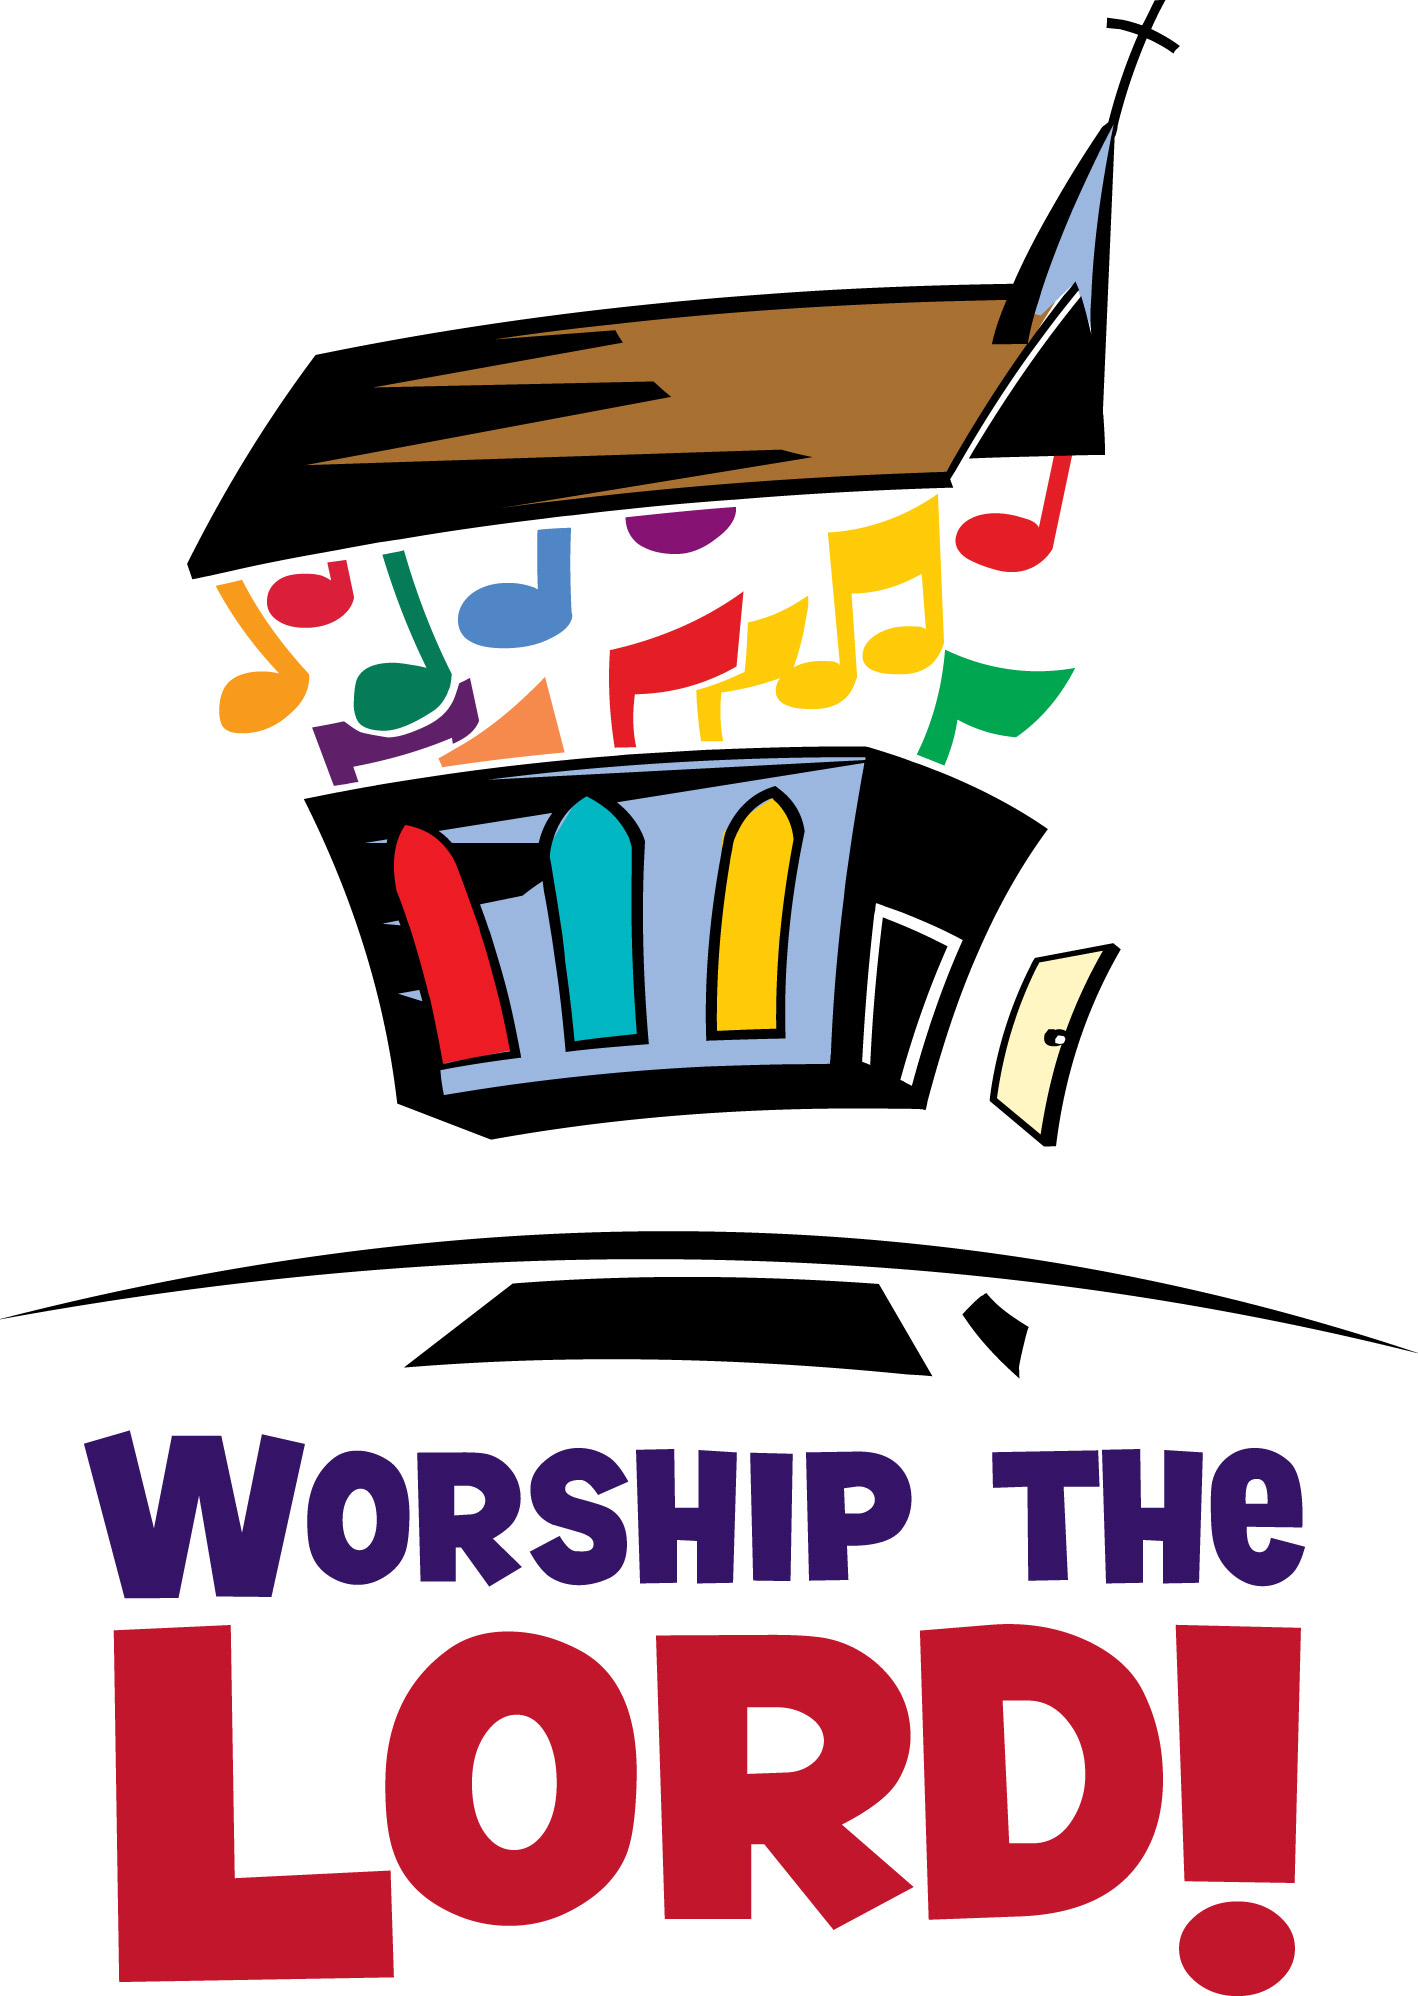 Worship Clip Art of People.